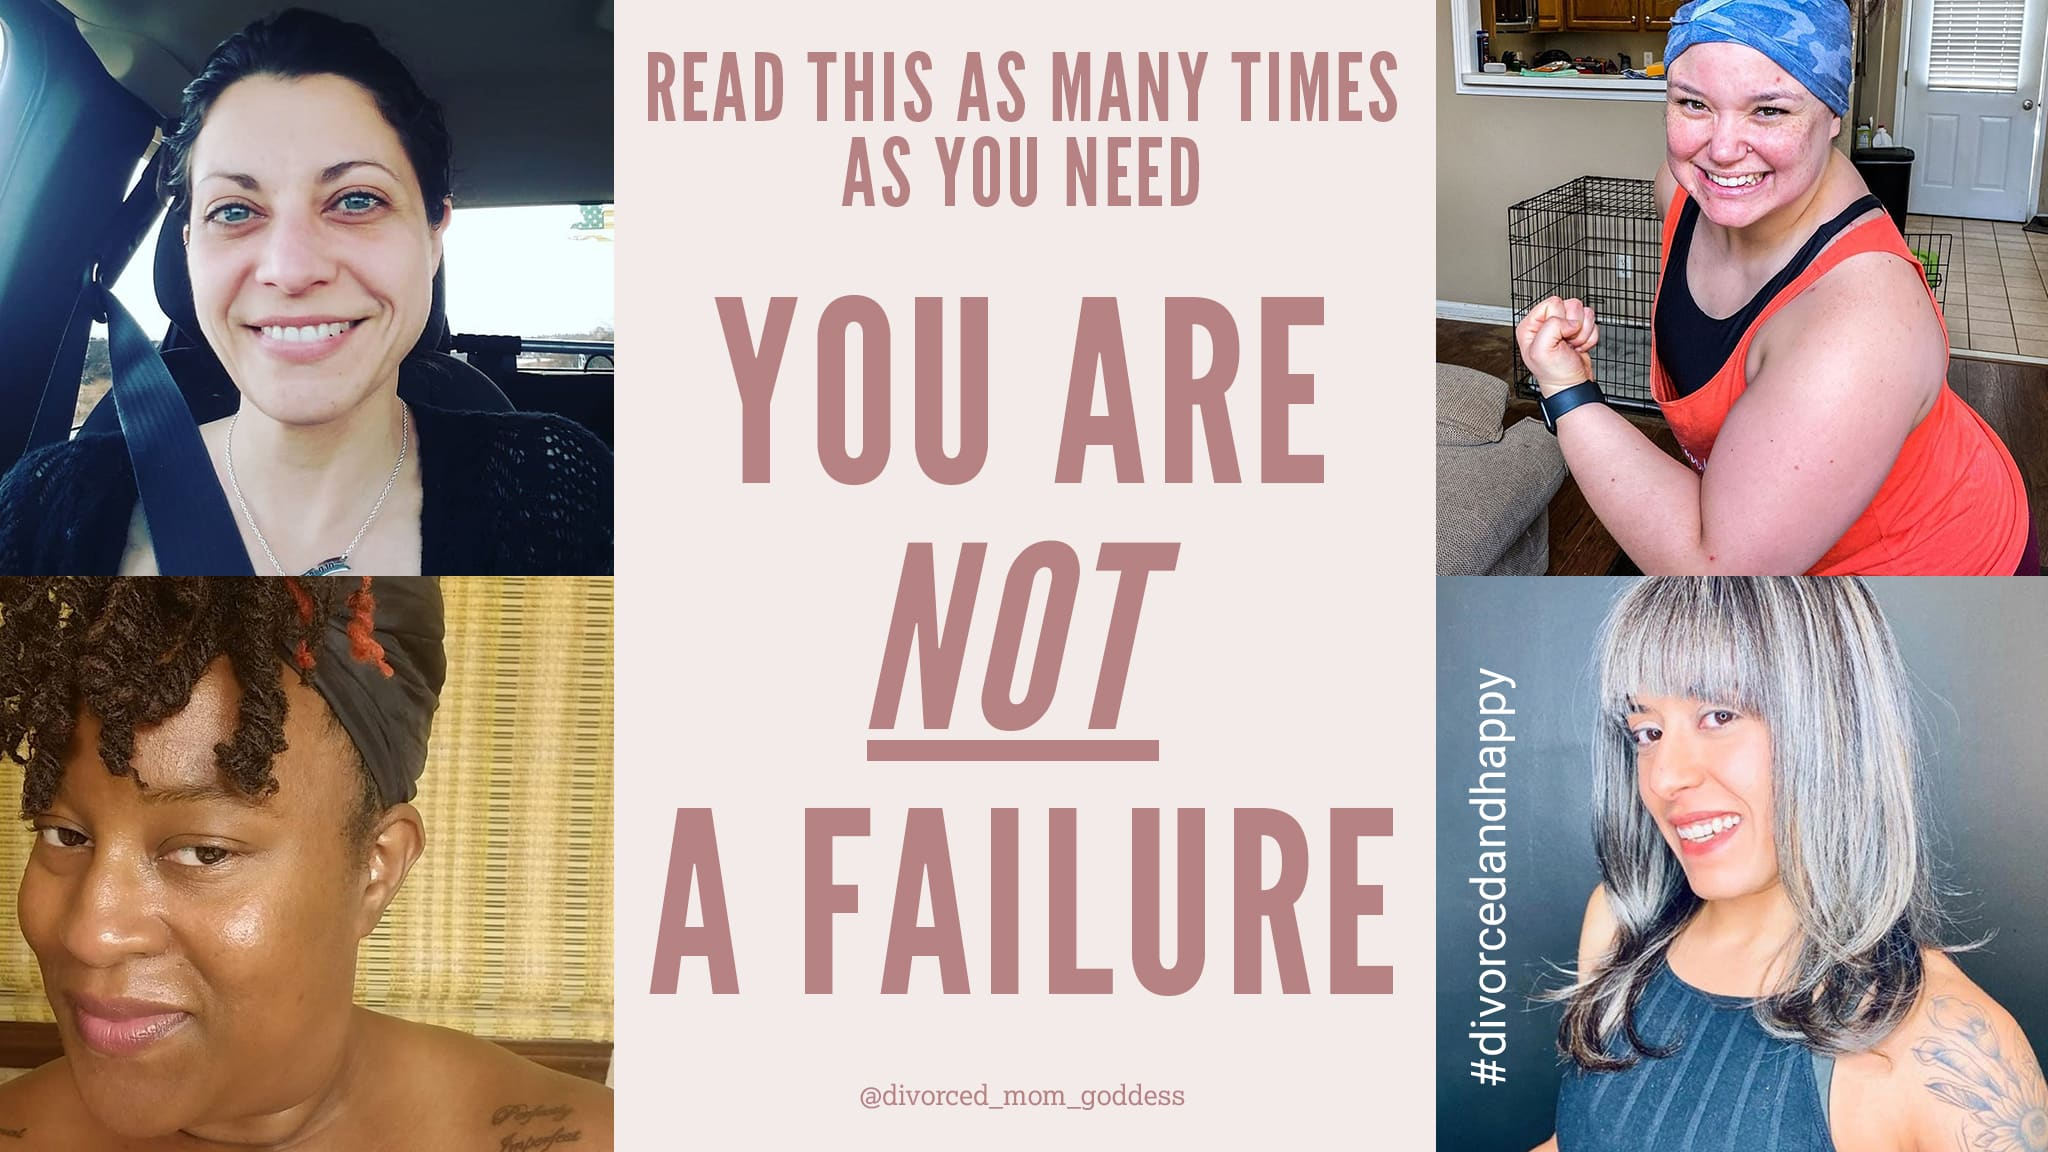 A Montage Of Social Media Photos Of Divorced And Happy Women With A Message That Divorce Does Not Mean You Are A Failure